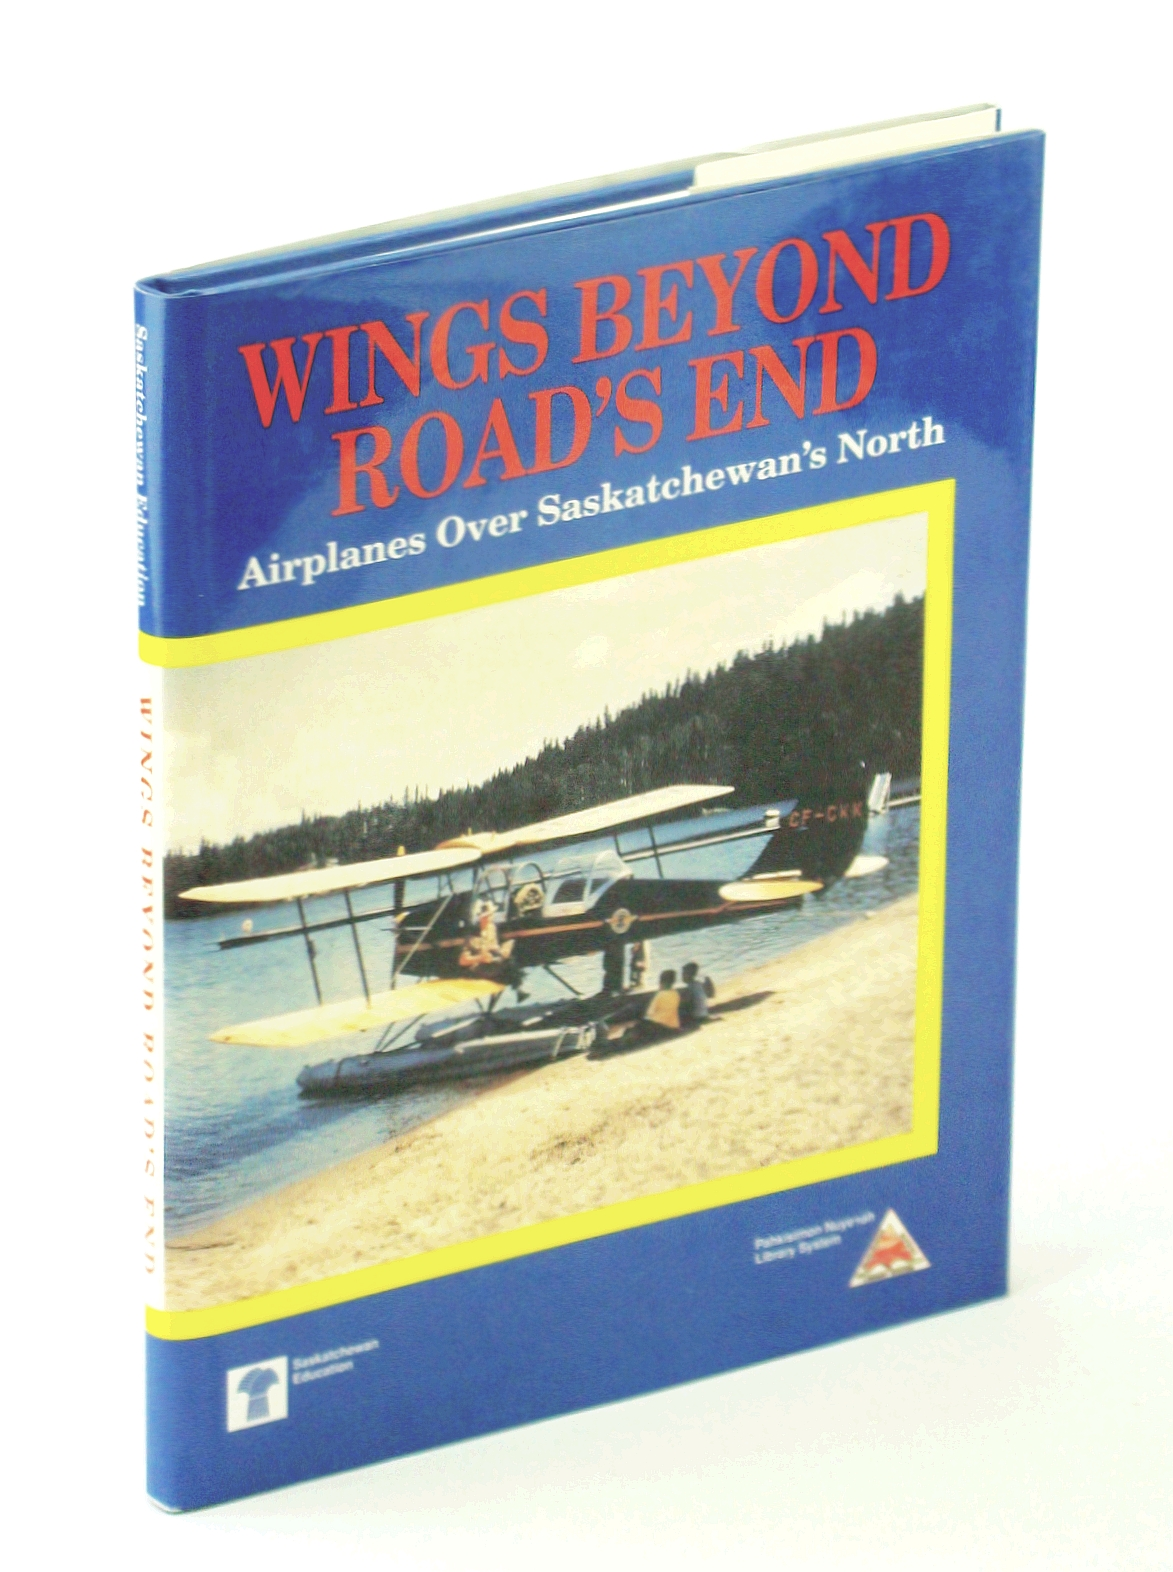 Image for Wings beyond road's end: Airplanes over Saskatchewan's north